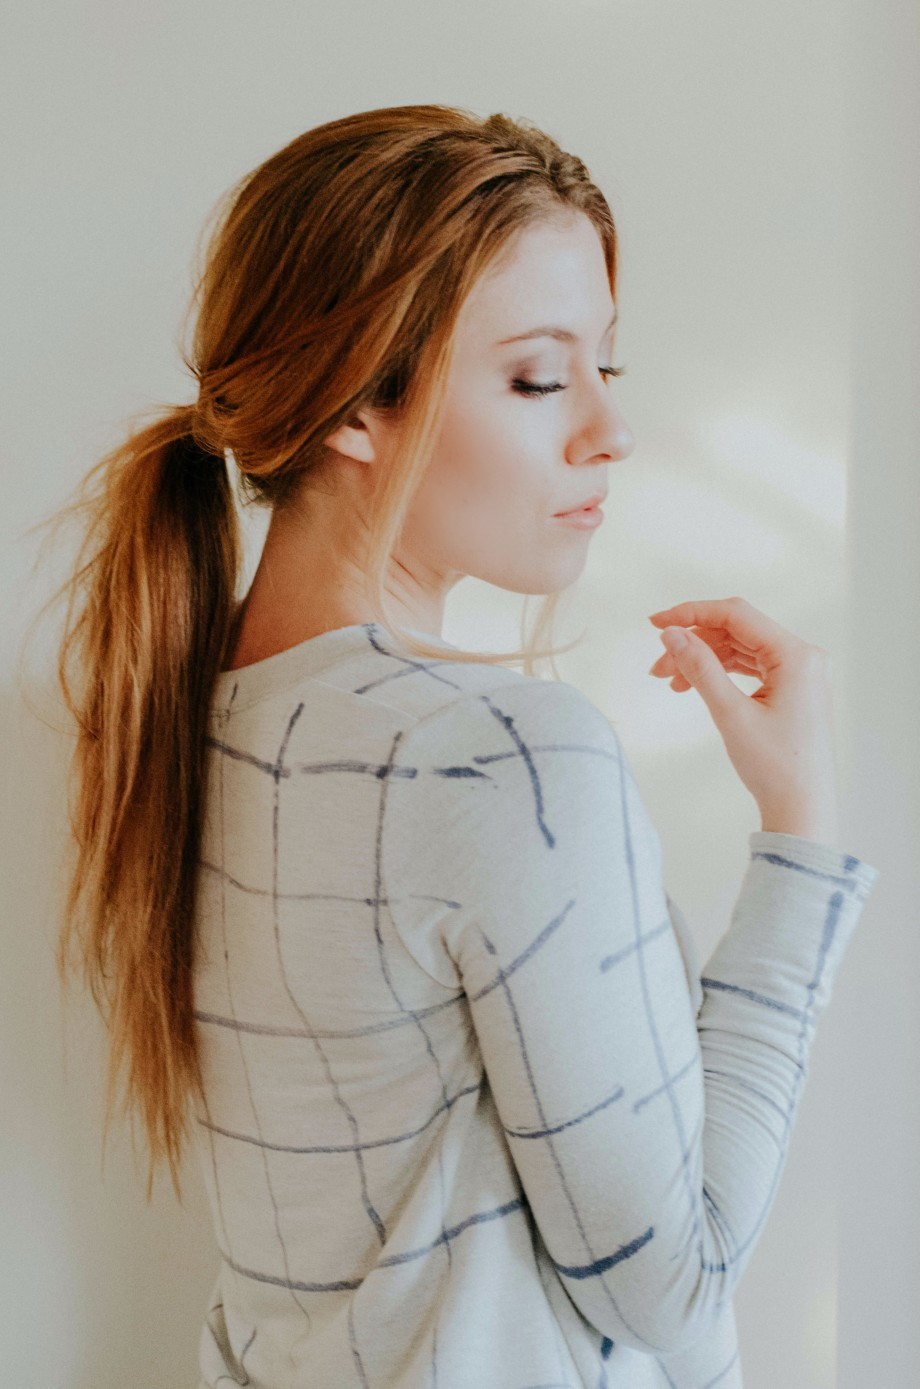 The model with Hair-Wrapped Low Pony.